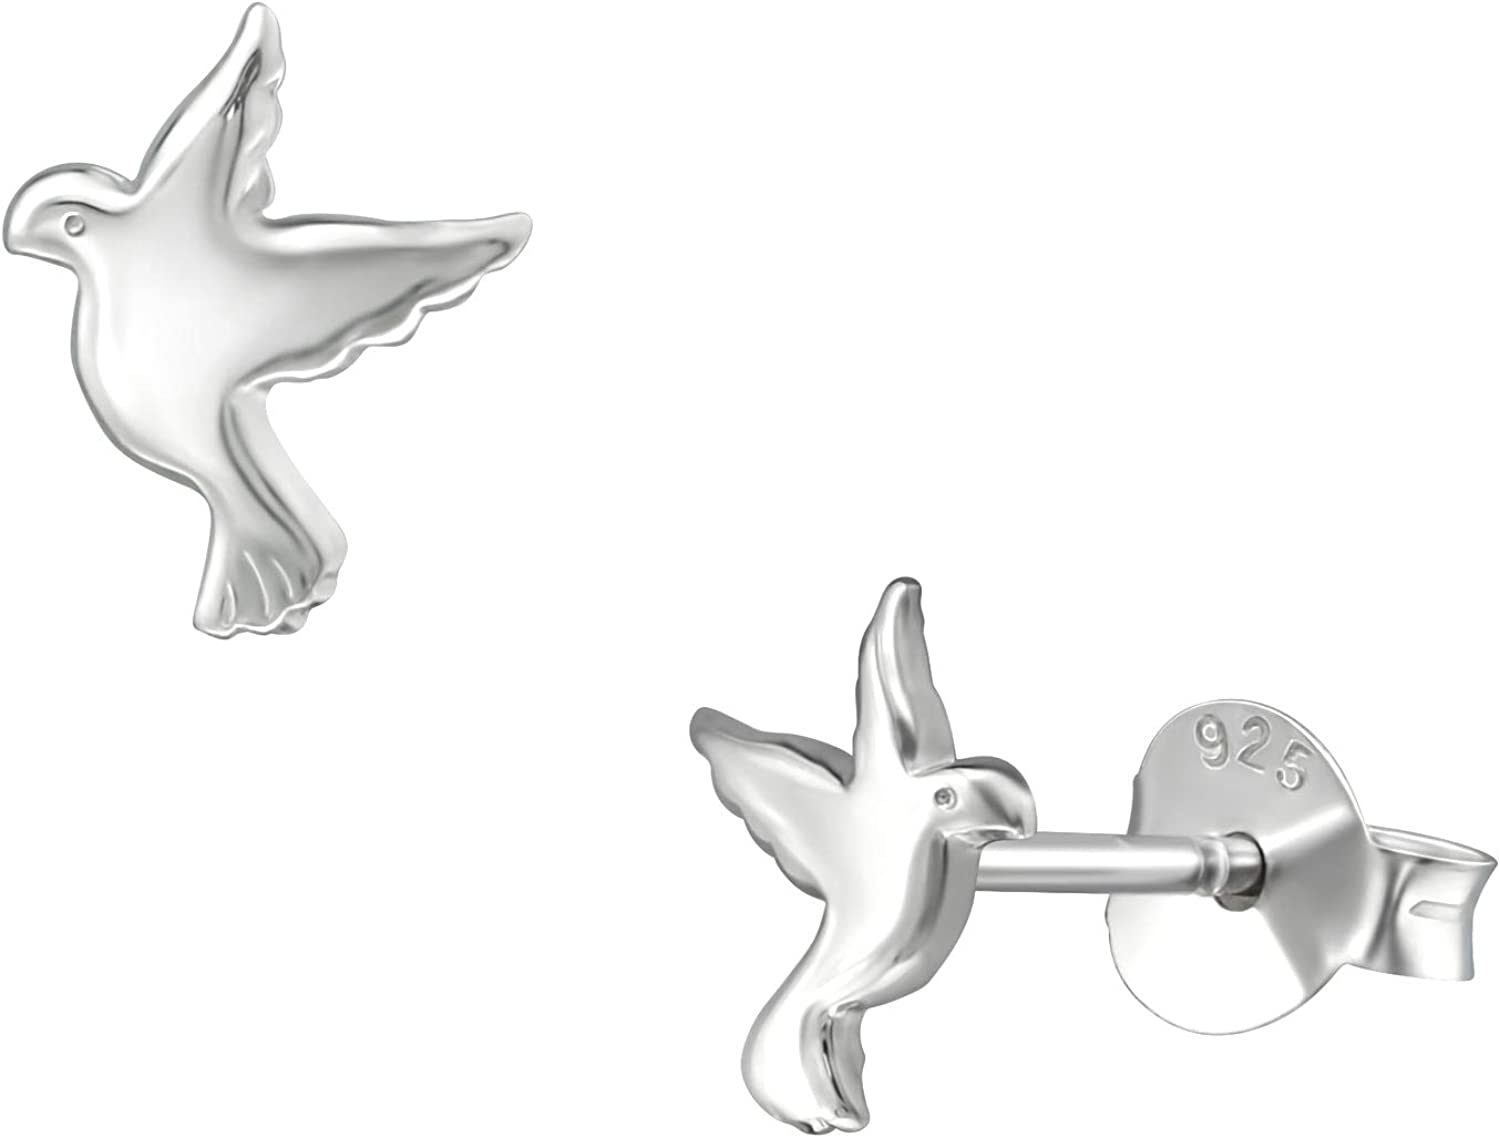 6mm Petite Flying Dove Birds Studs Push Back Solid 925 Sterling Silver Earrings